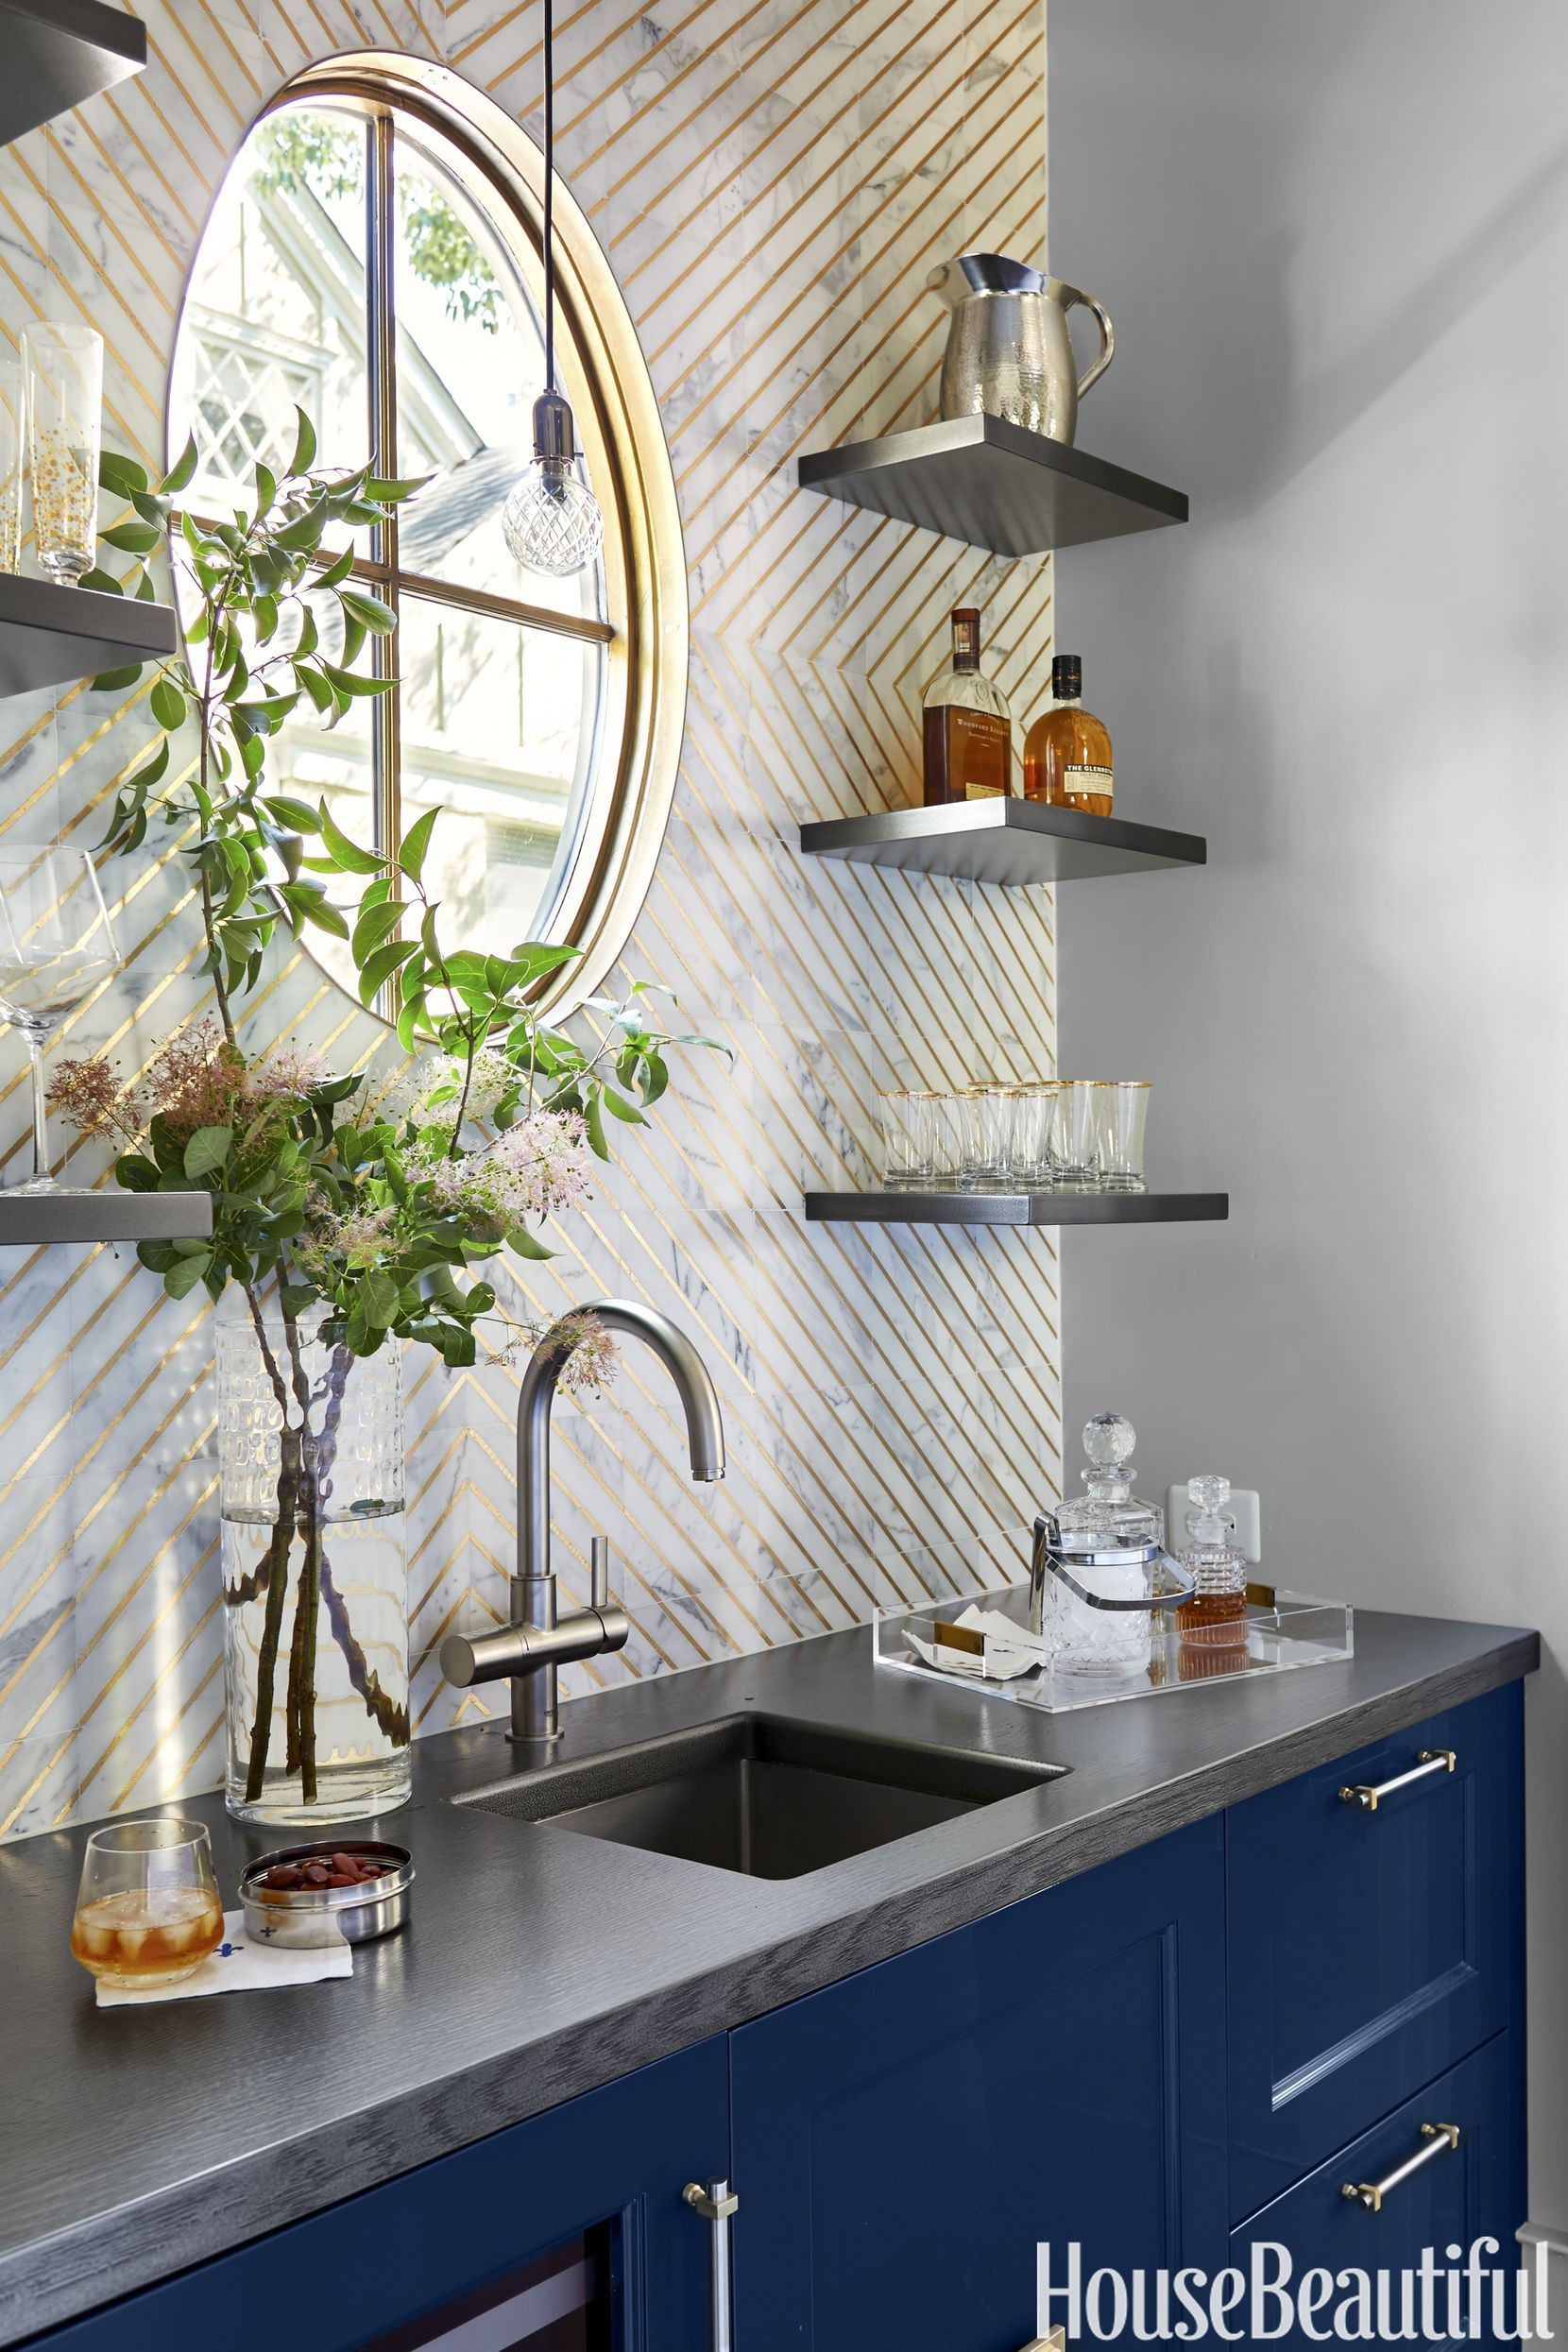 51 insanely chic kitchen backsplashes small kitchen storage ideas rh pinterest com